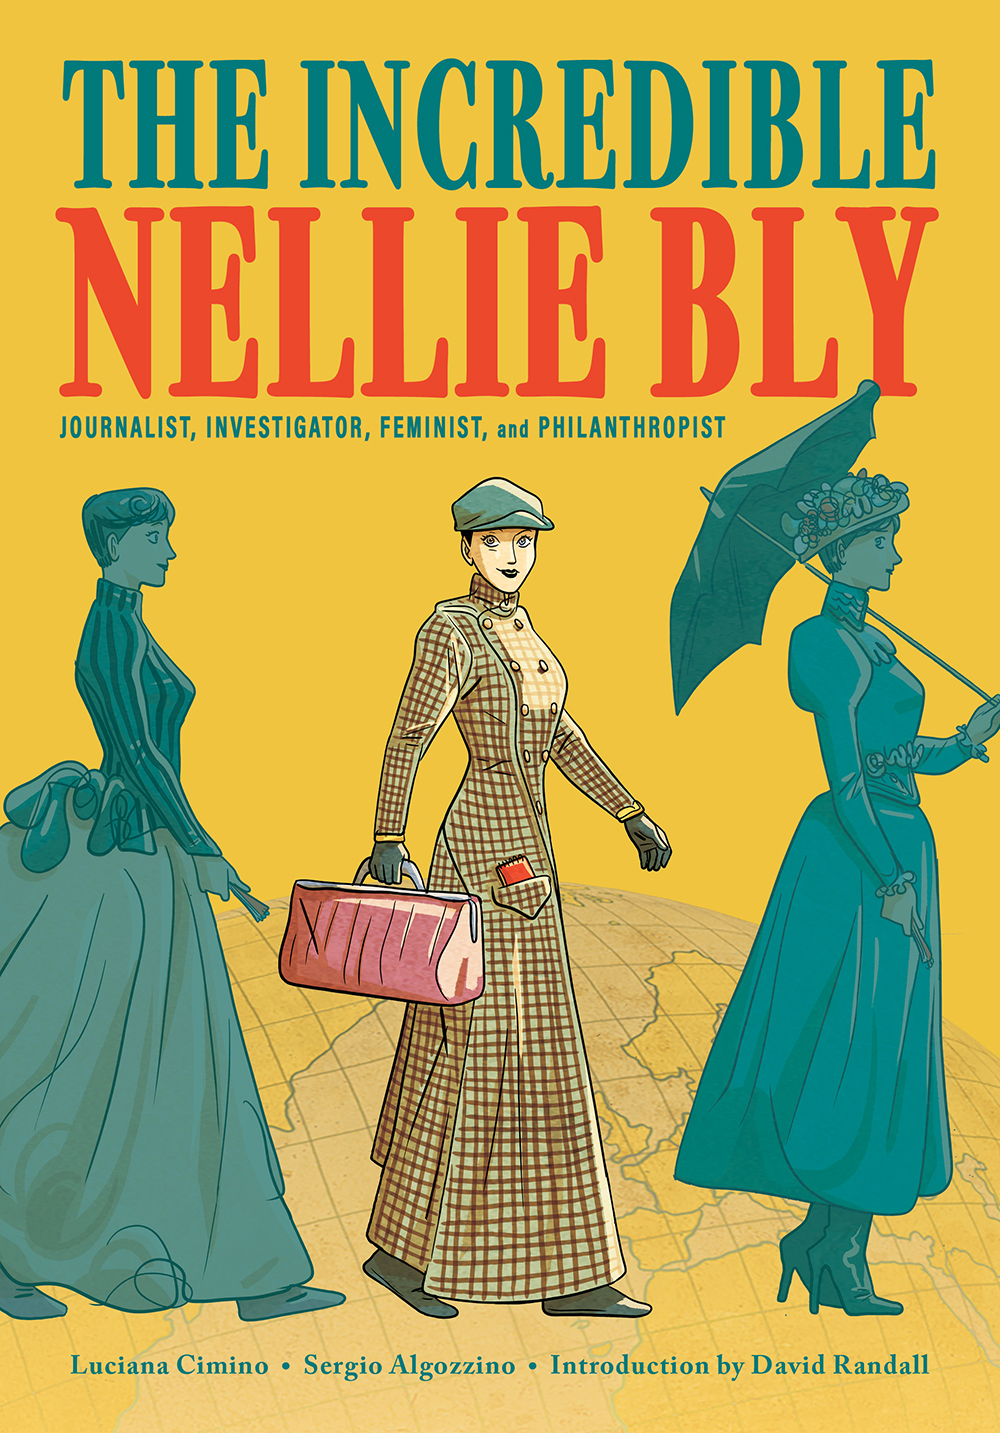 The Incredible Nellie Bly: Journalist, Investigator, Feminist, and Philanthropist